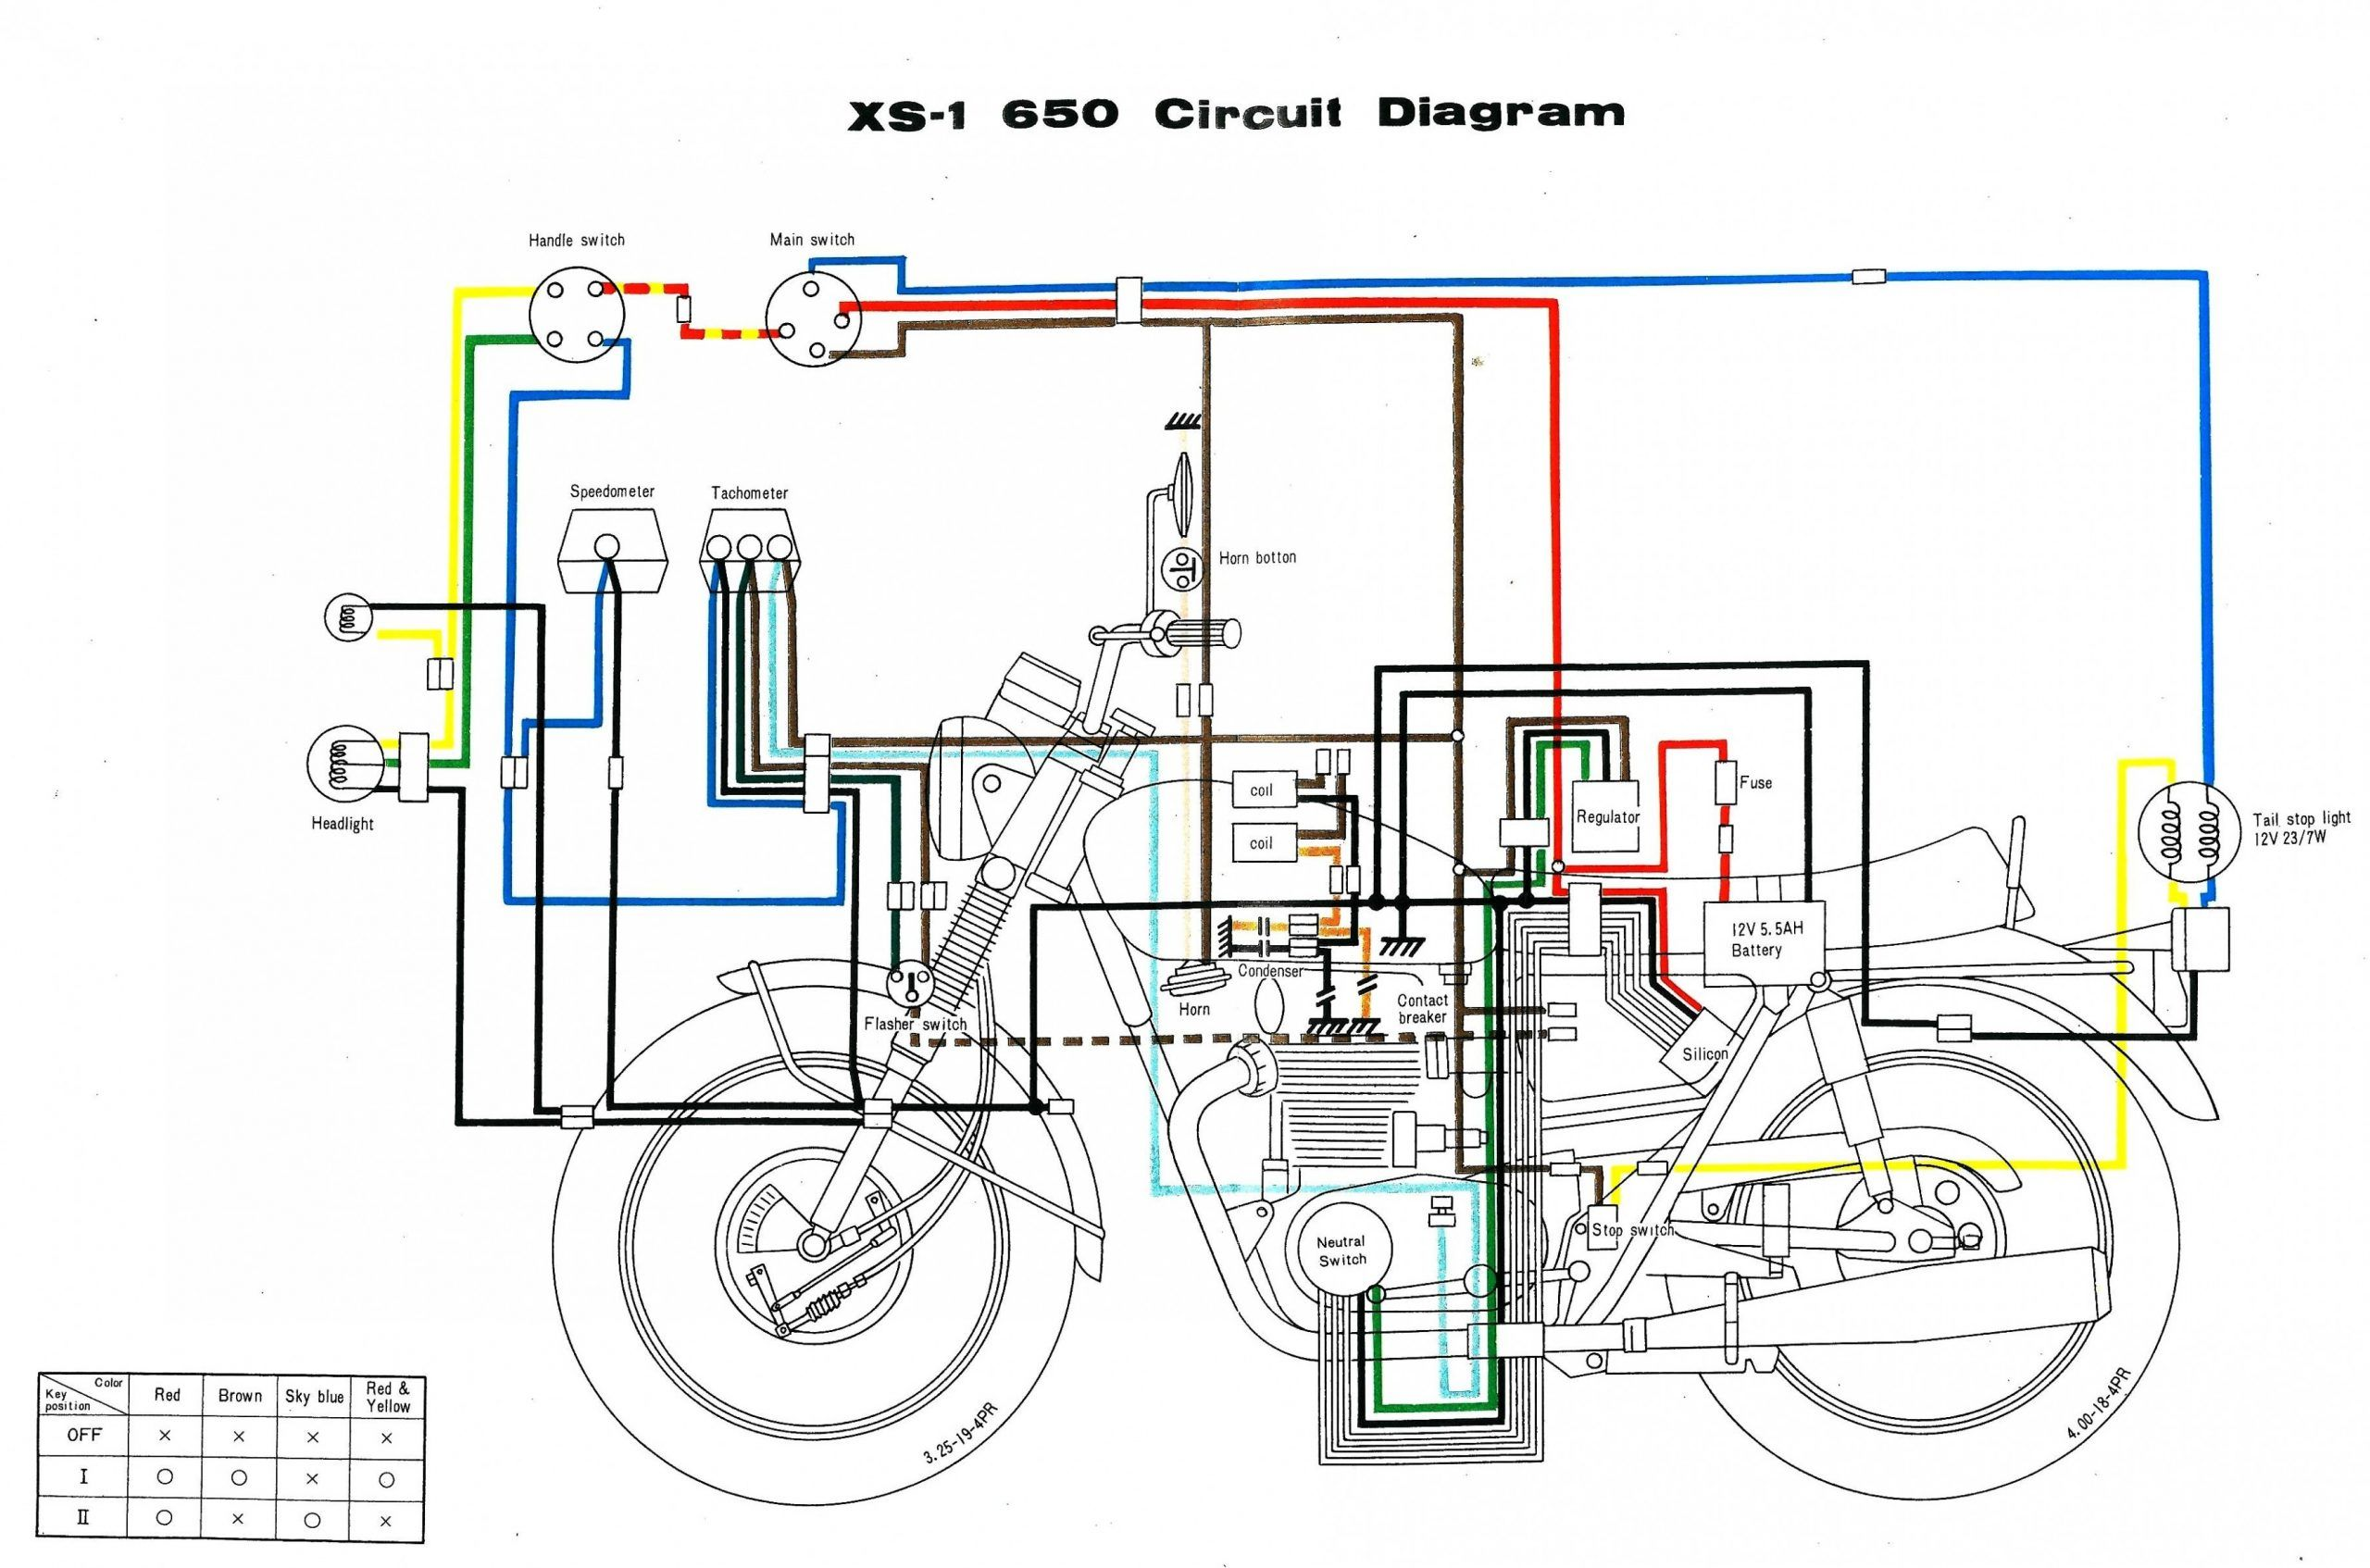 Xs8 Engine Diagram Explained In 2020 Electrical Circuit Diagram Electrical Wiring Diagram Electrical Diagram